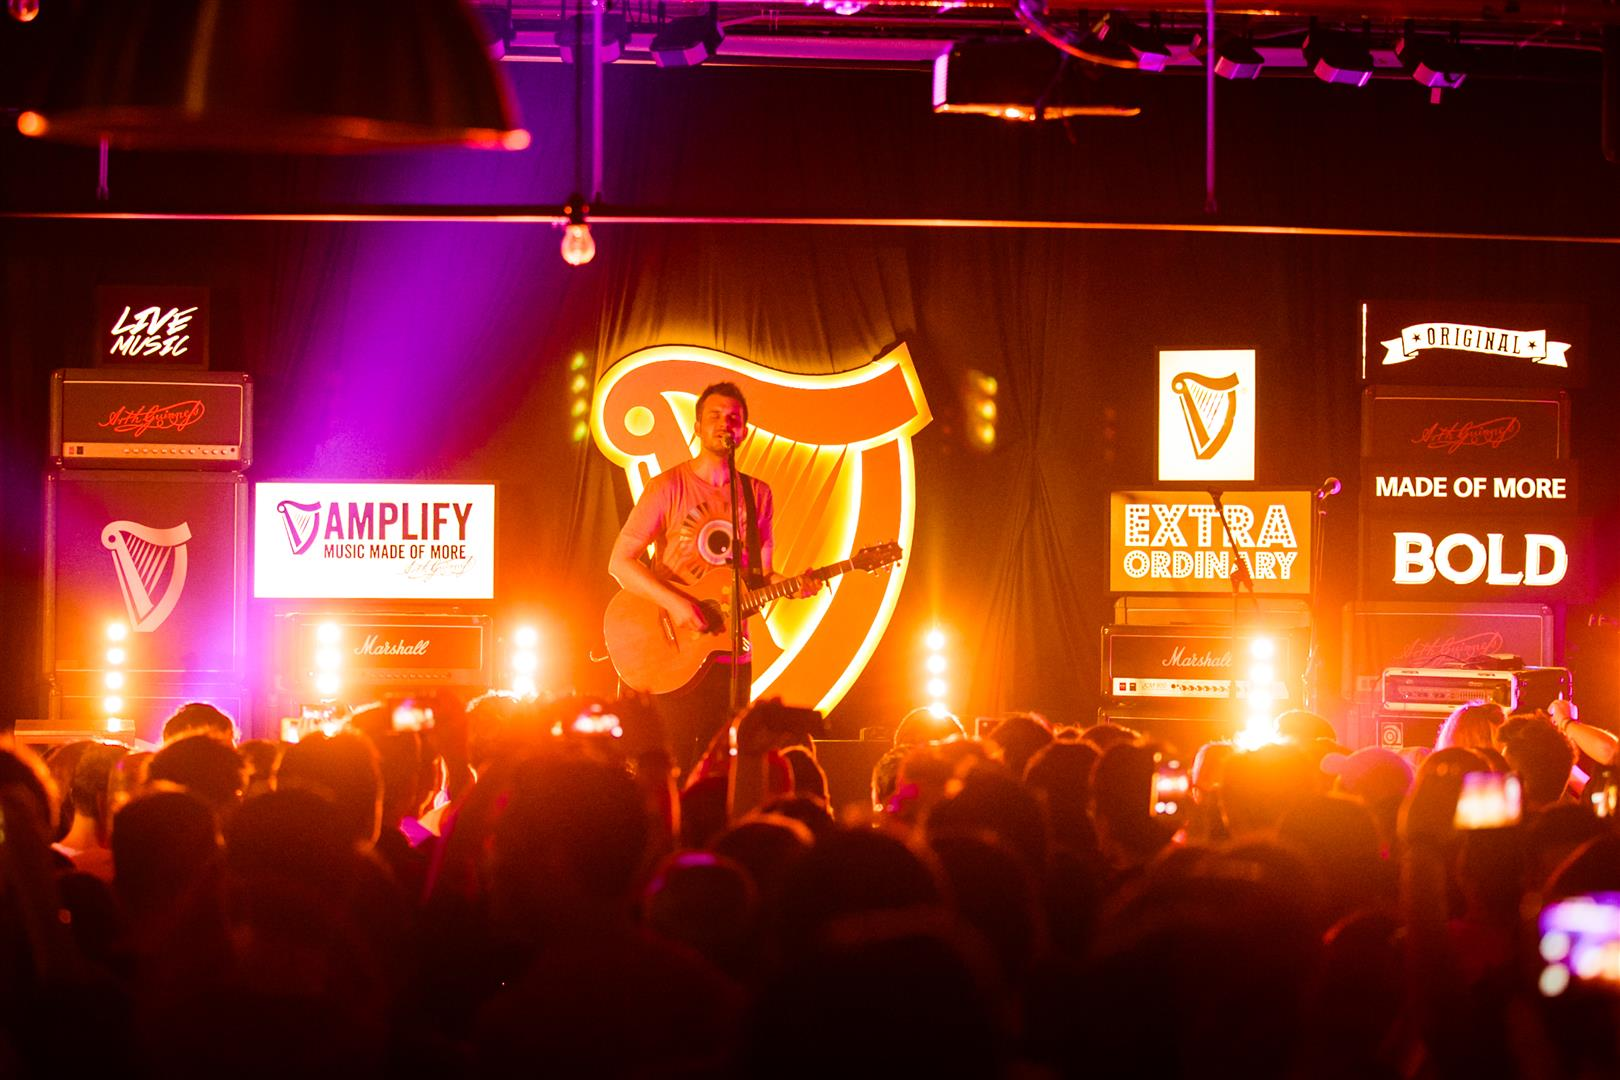 source: Guinness Amplify